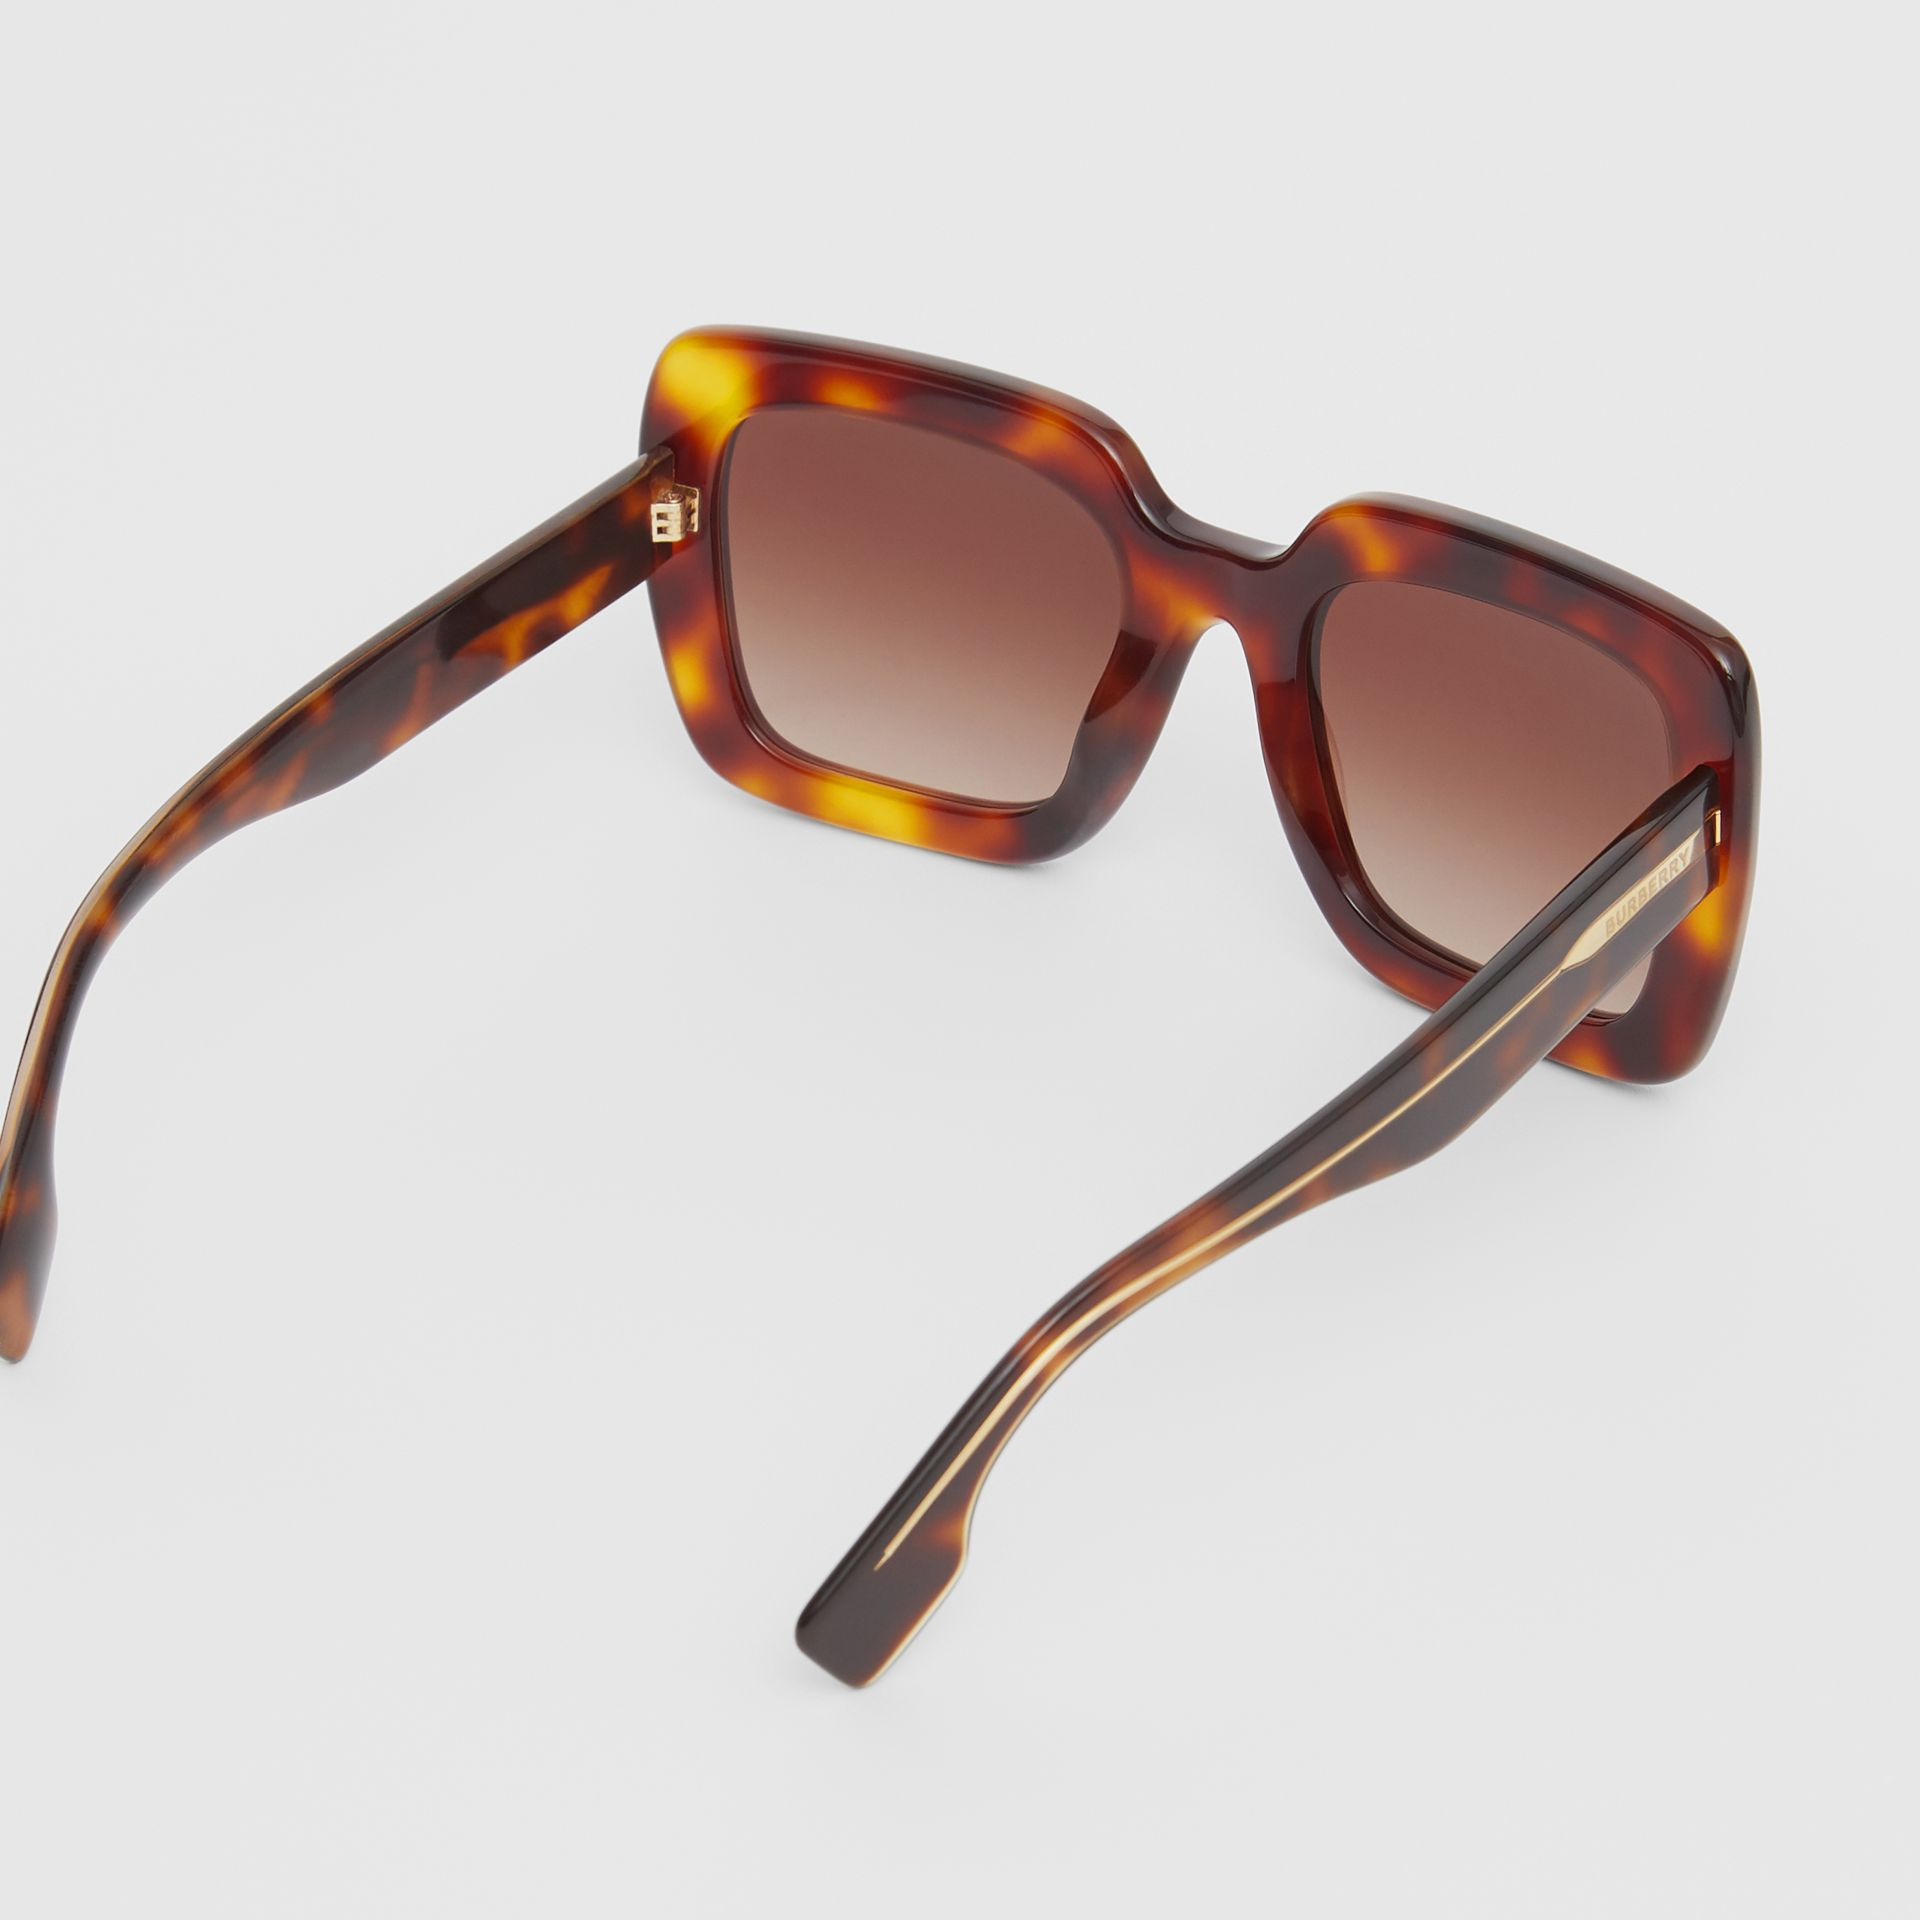 Oversized Square Frame Sunglasses in Tortoiseshell - Women | Burberry Hong Kong S.A.R - gallery image 3